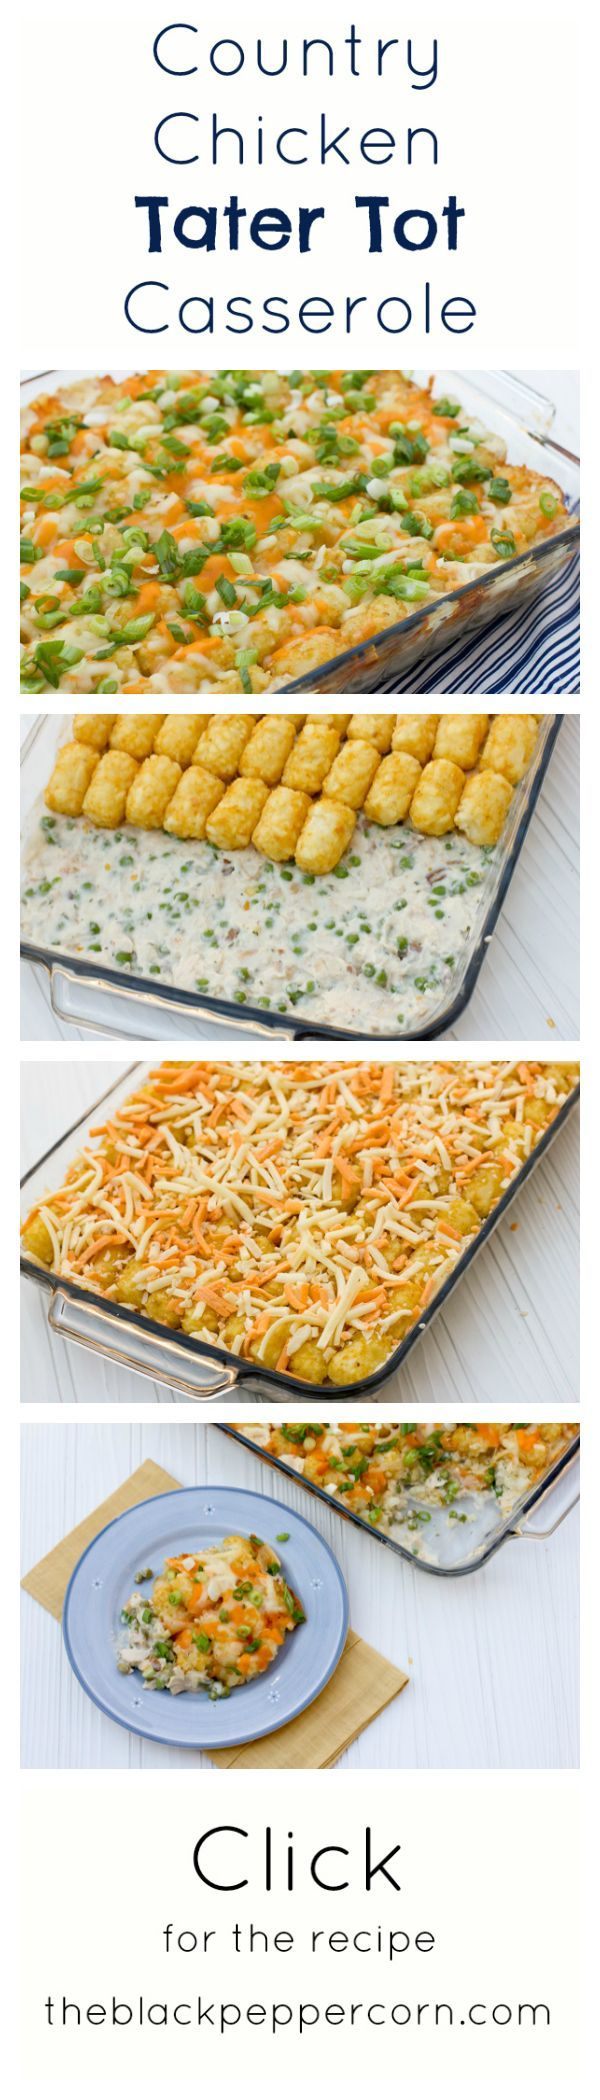 Country Chicken Tater Tot Casserole